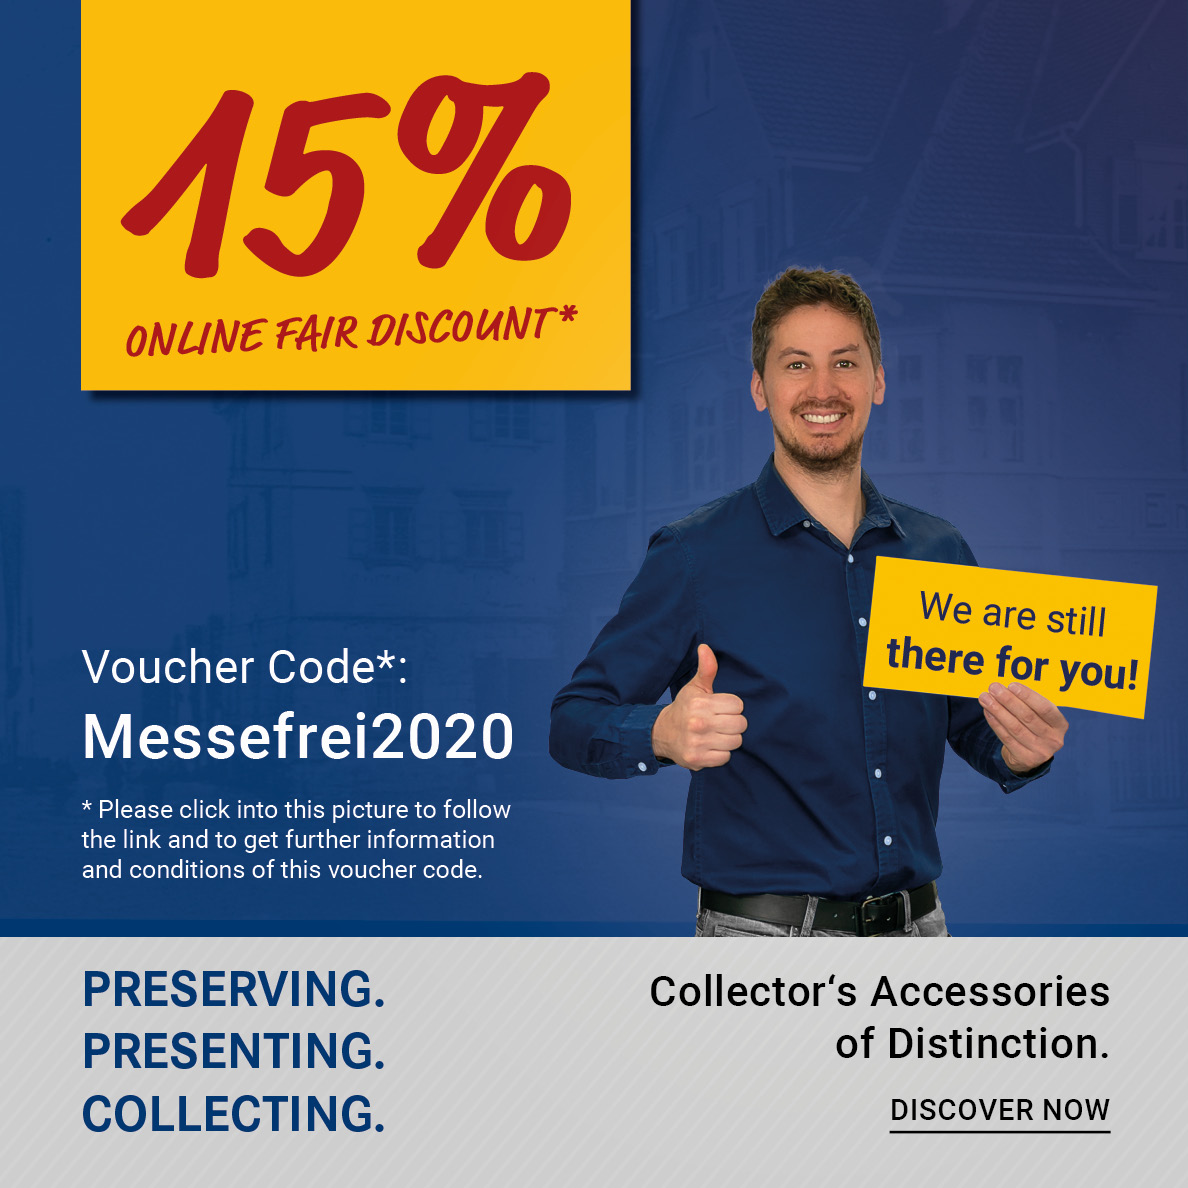 Online Fair Discount: Messefrei2020